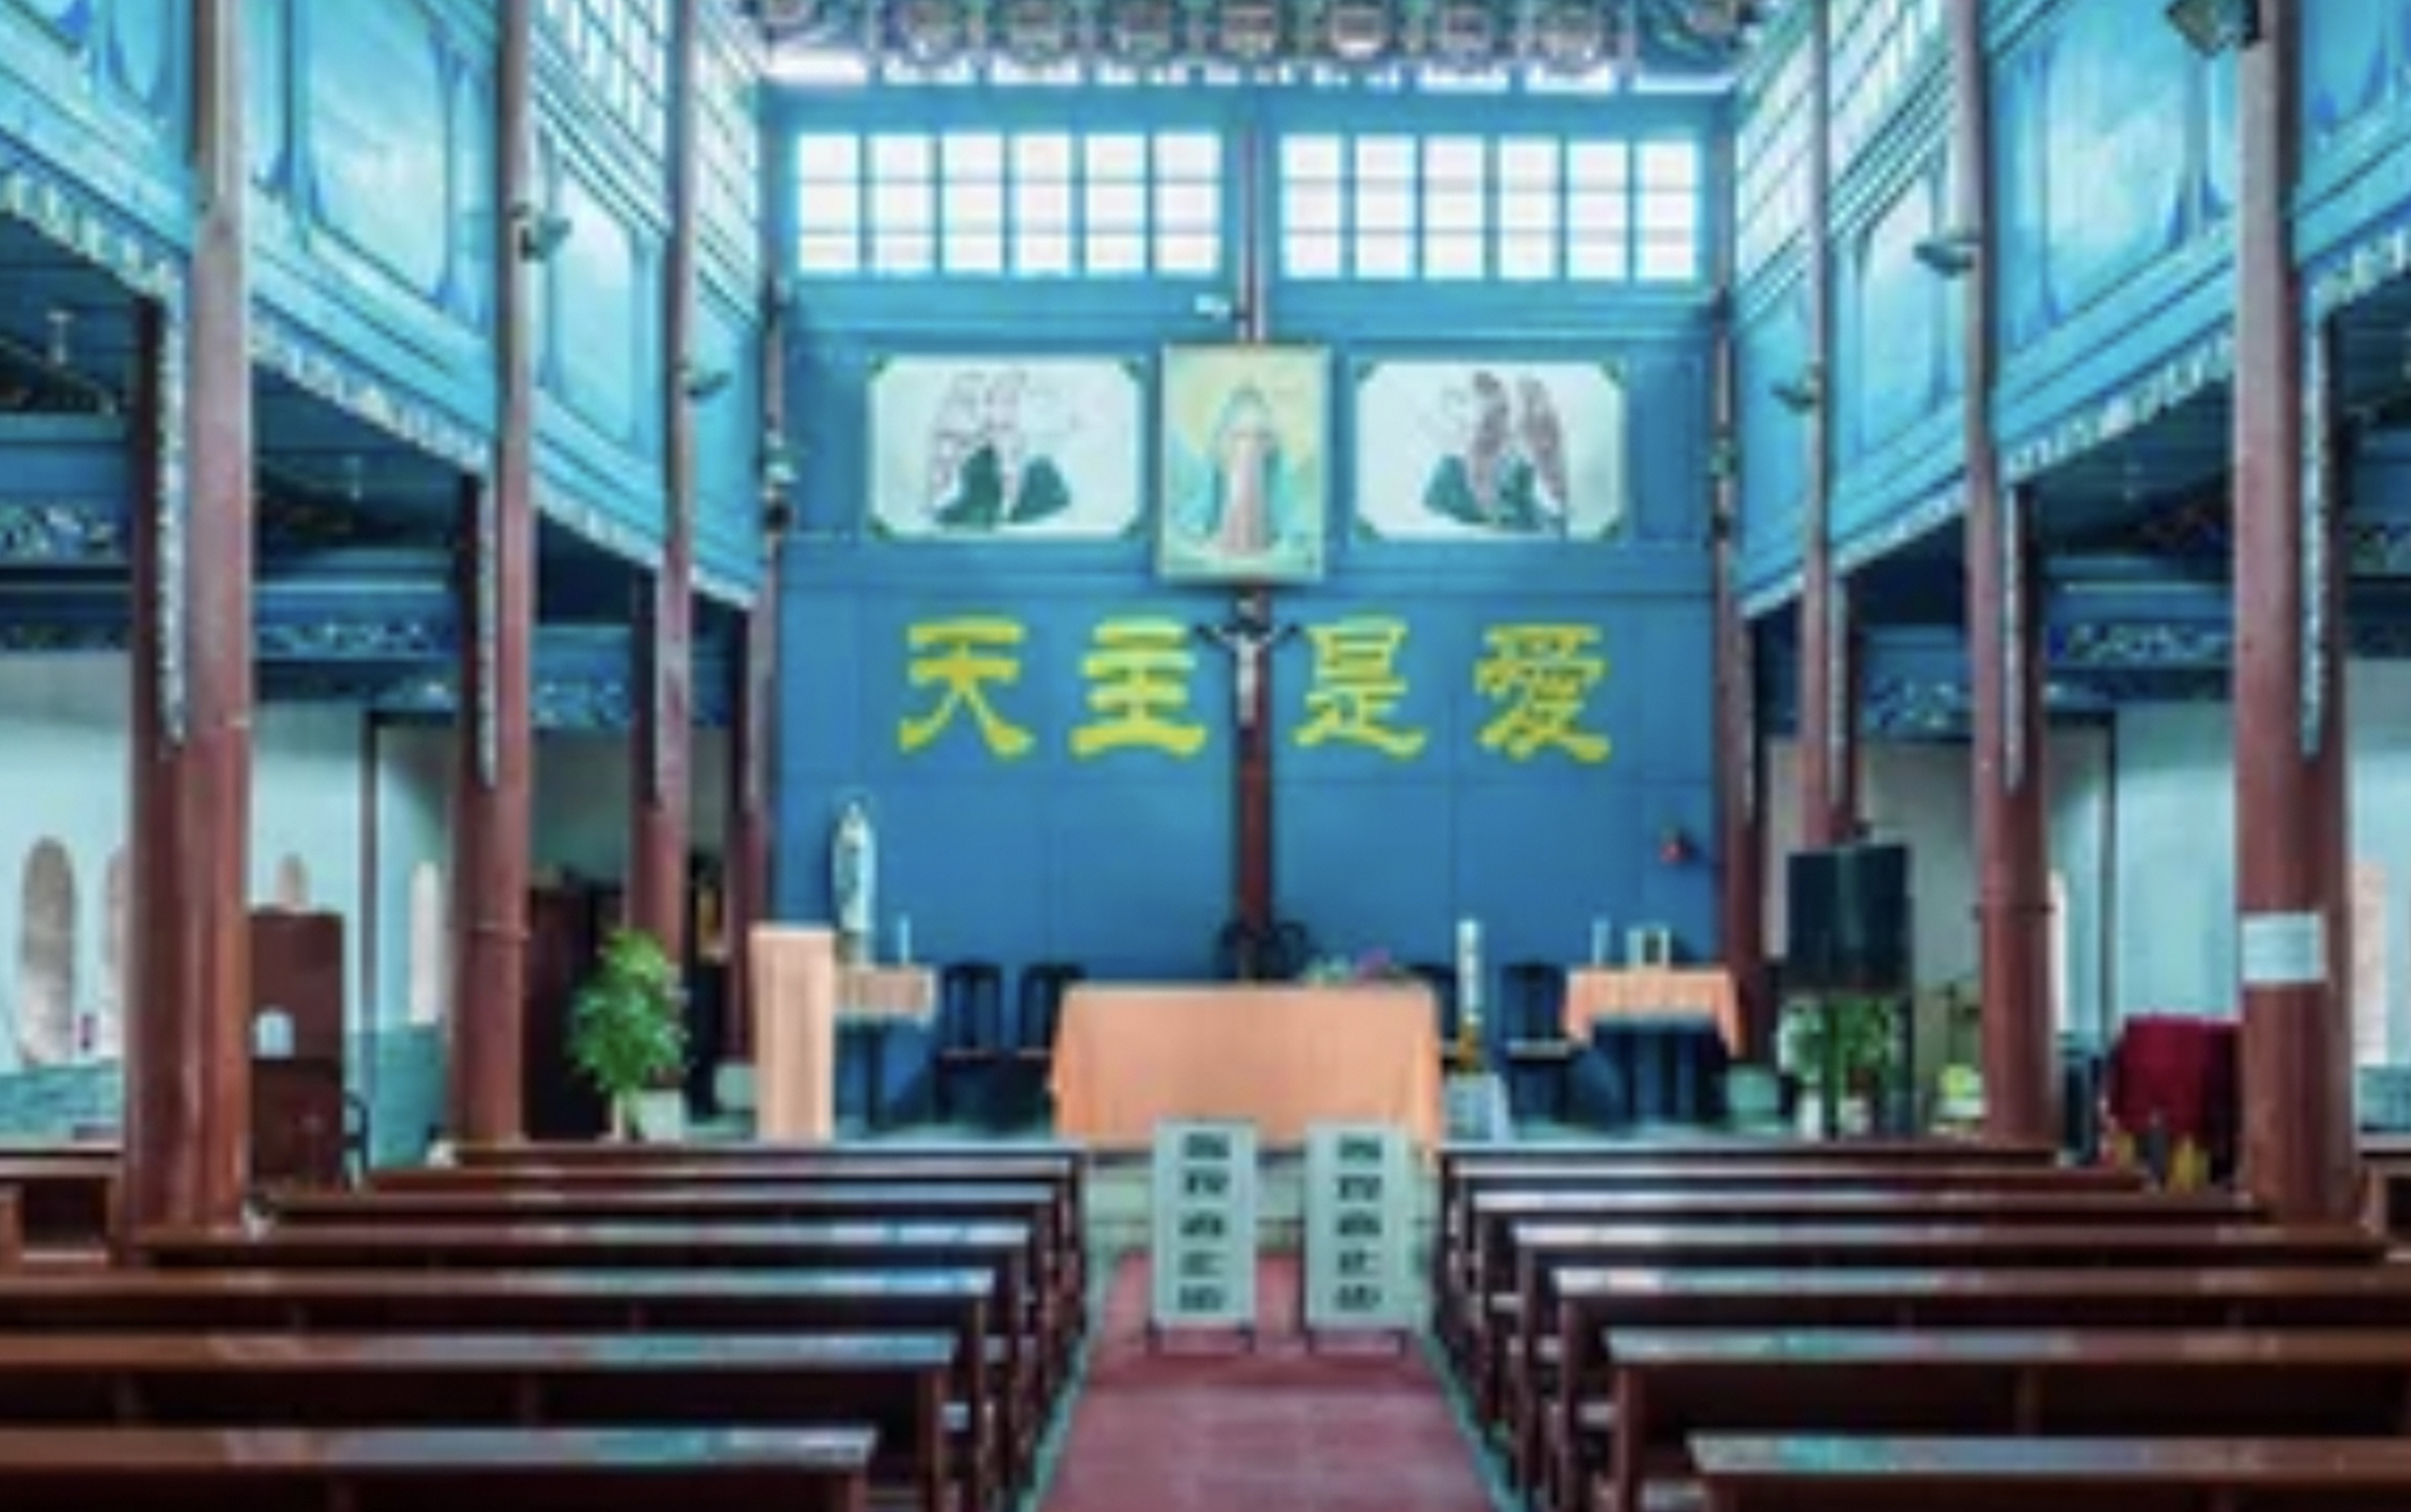 Chinese Offer Cash Rewards for Reporting Religious Activities